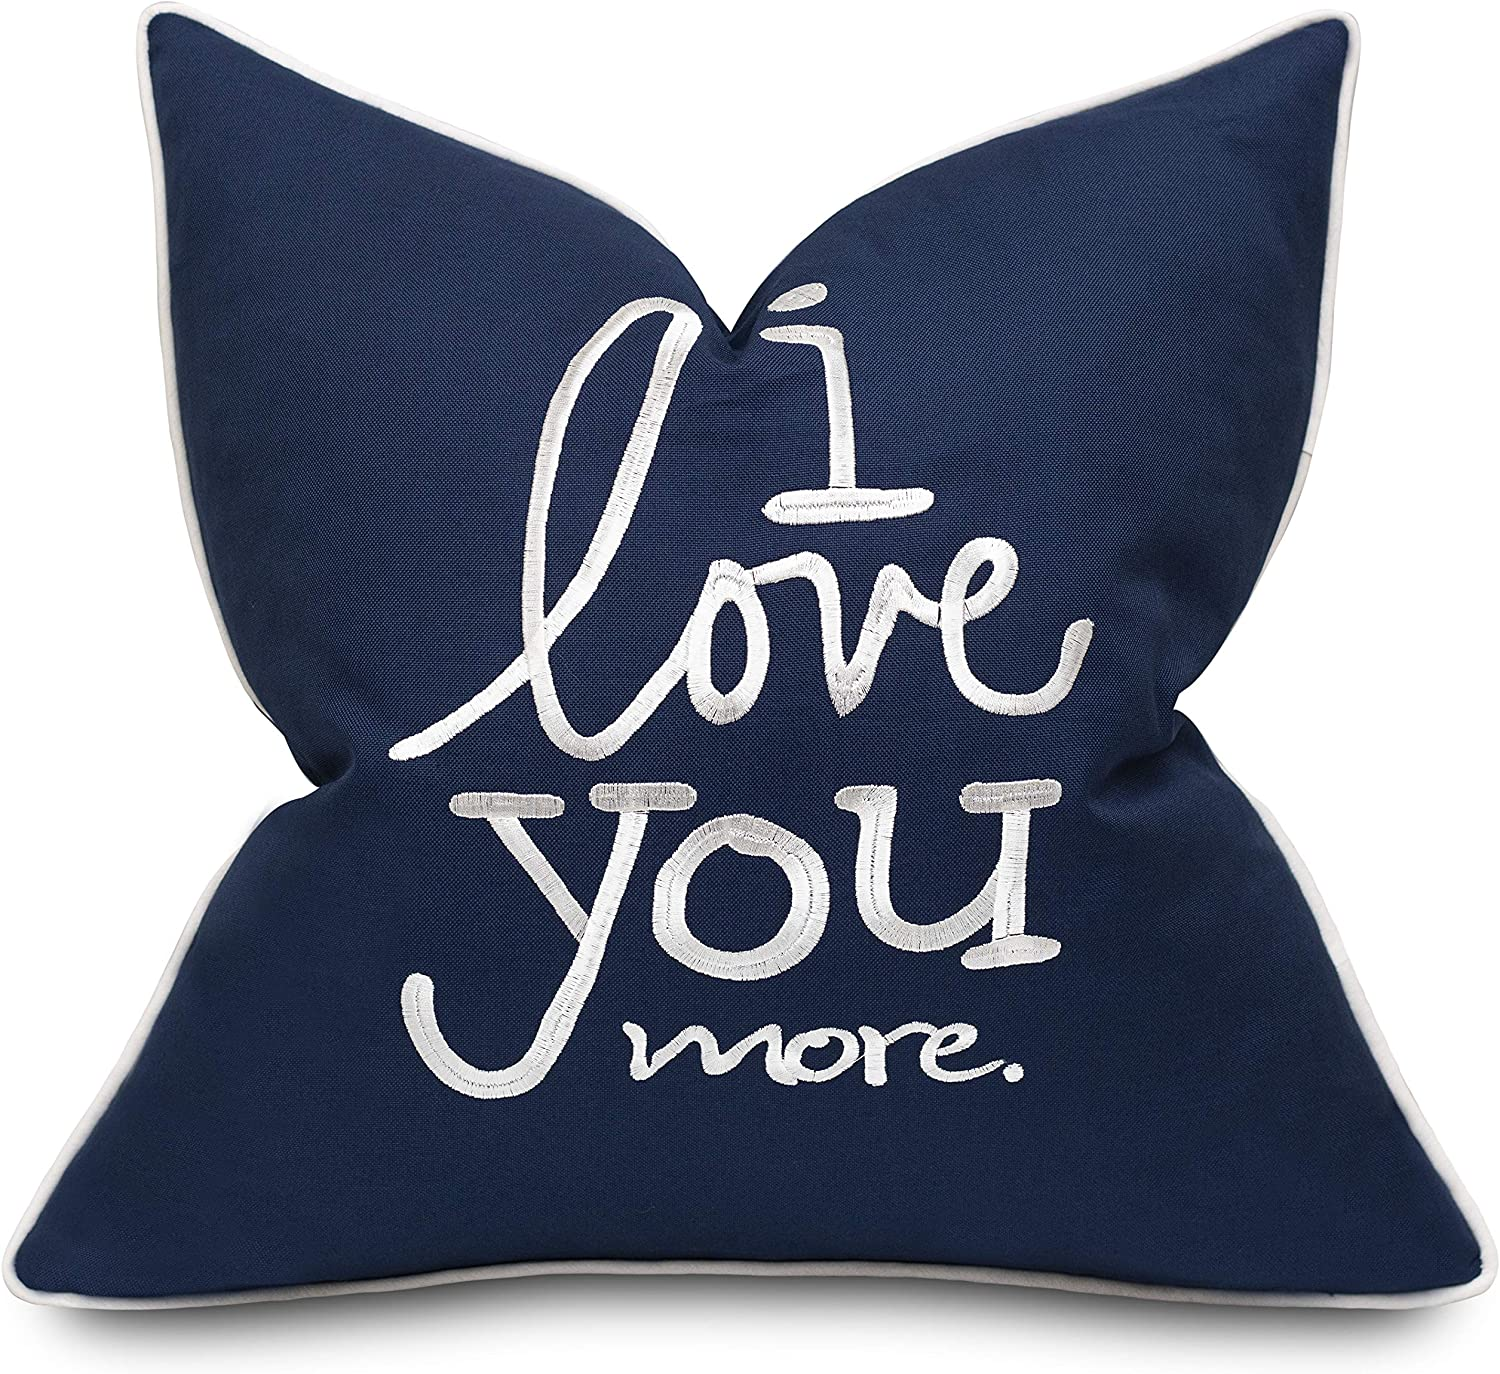 Adecor I Love You More Cotton Embroidered Decorative Square Accent Throw Pillow Cover Gift For Boyfriend Girlfriend Bedroom Decor 18x18 Inches Navy Blue Home Kitchen